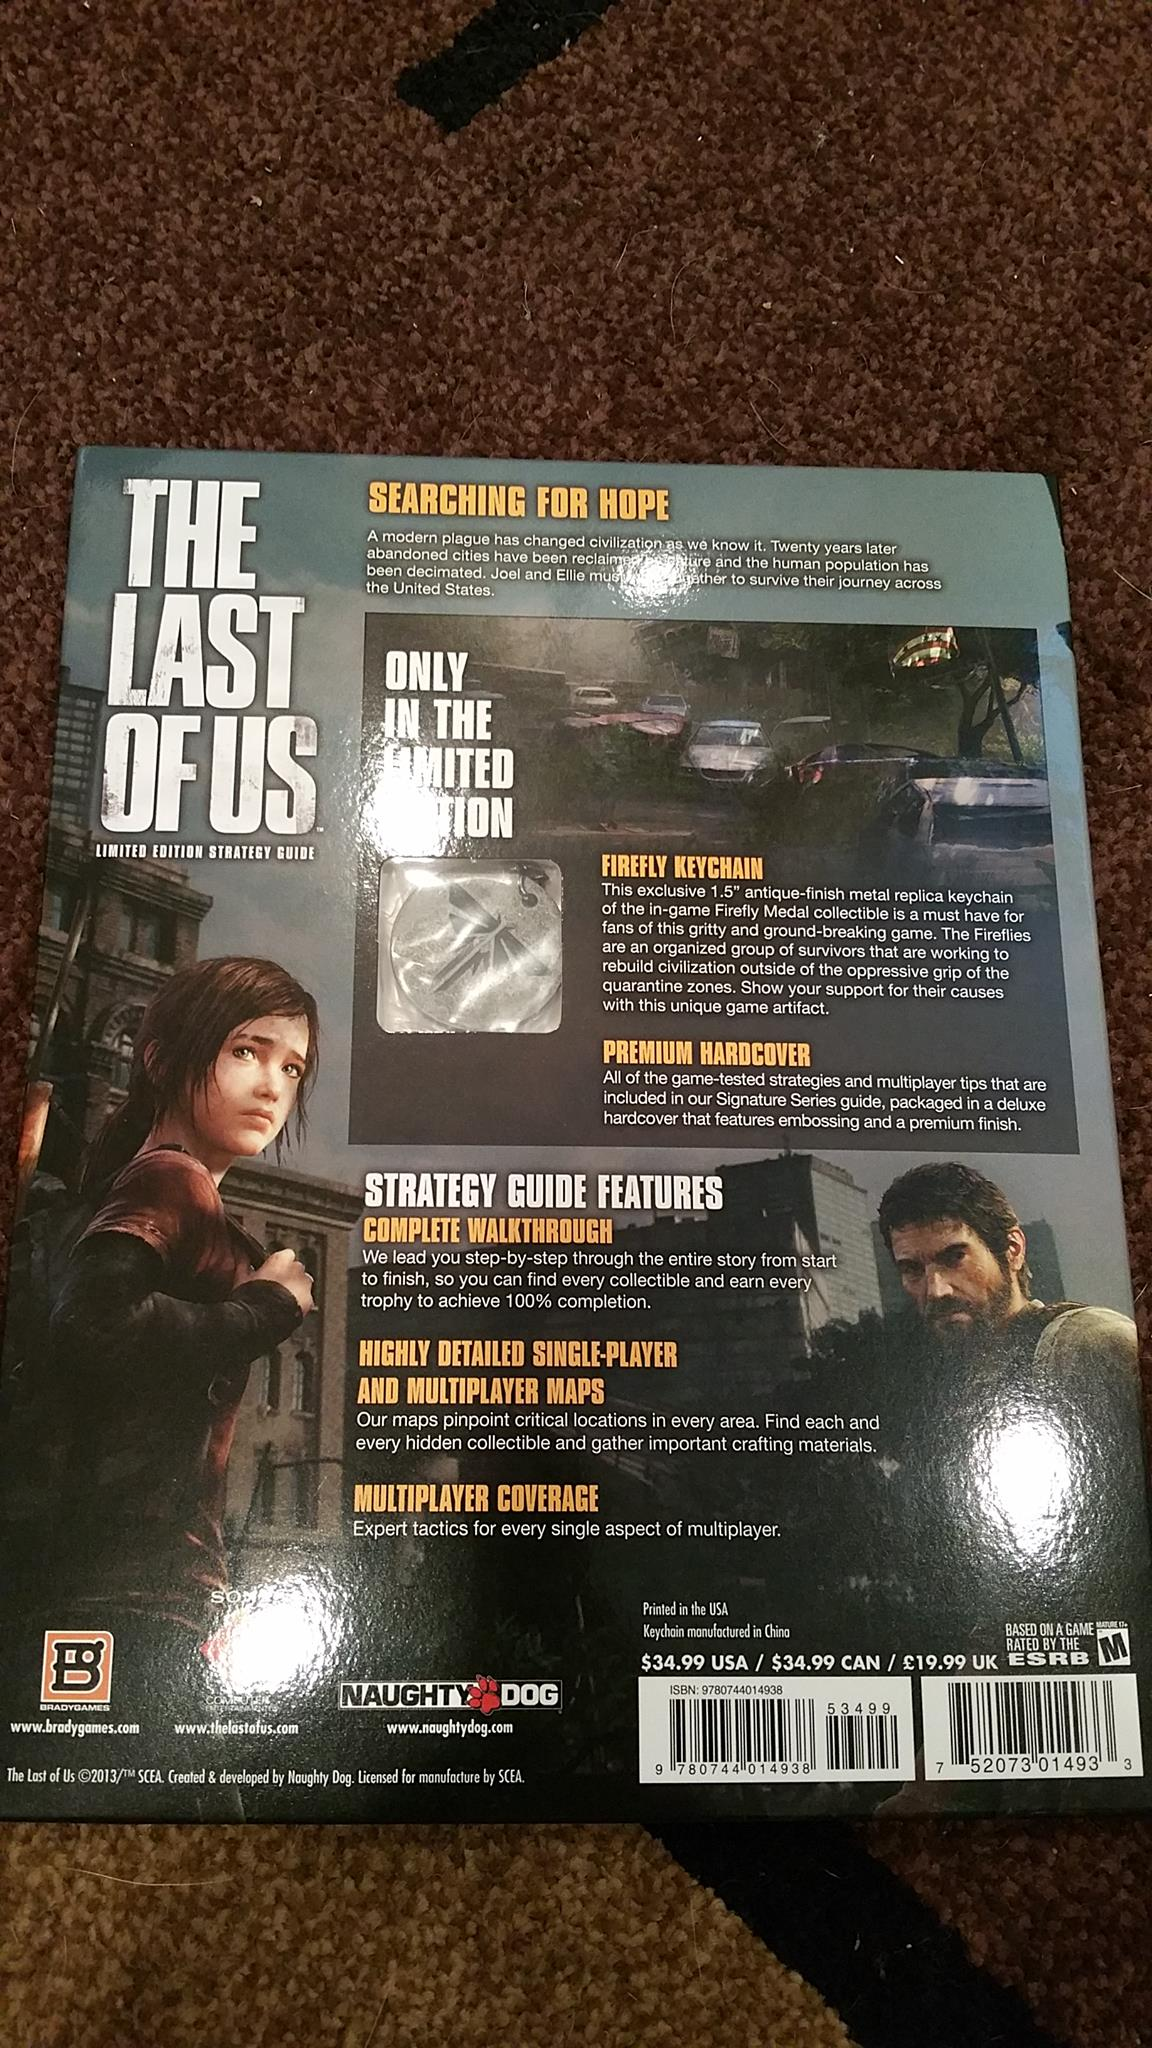 55b8ab5c5a4de Naughty Dog Reaches Out To Grieving Fan In An Amazing Way